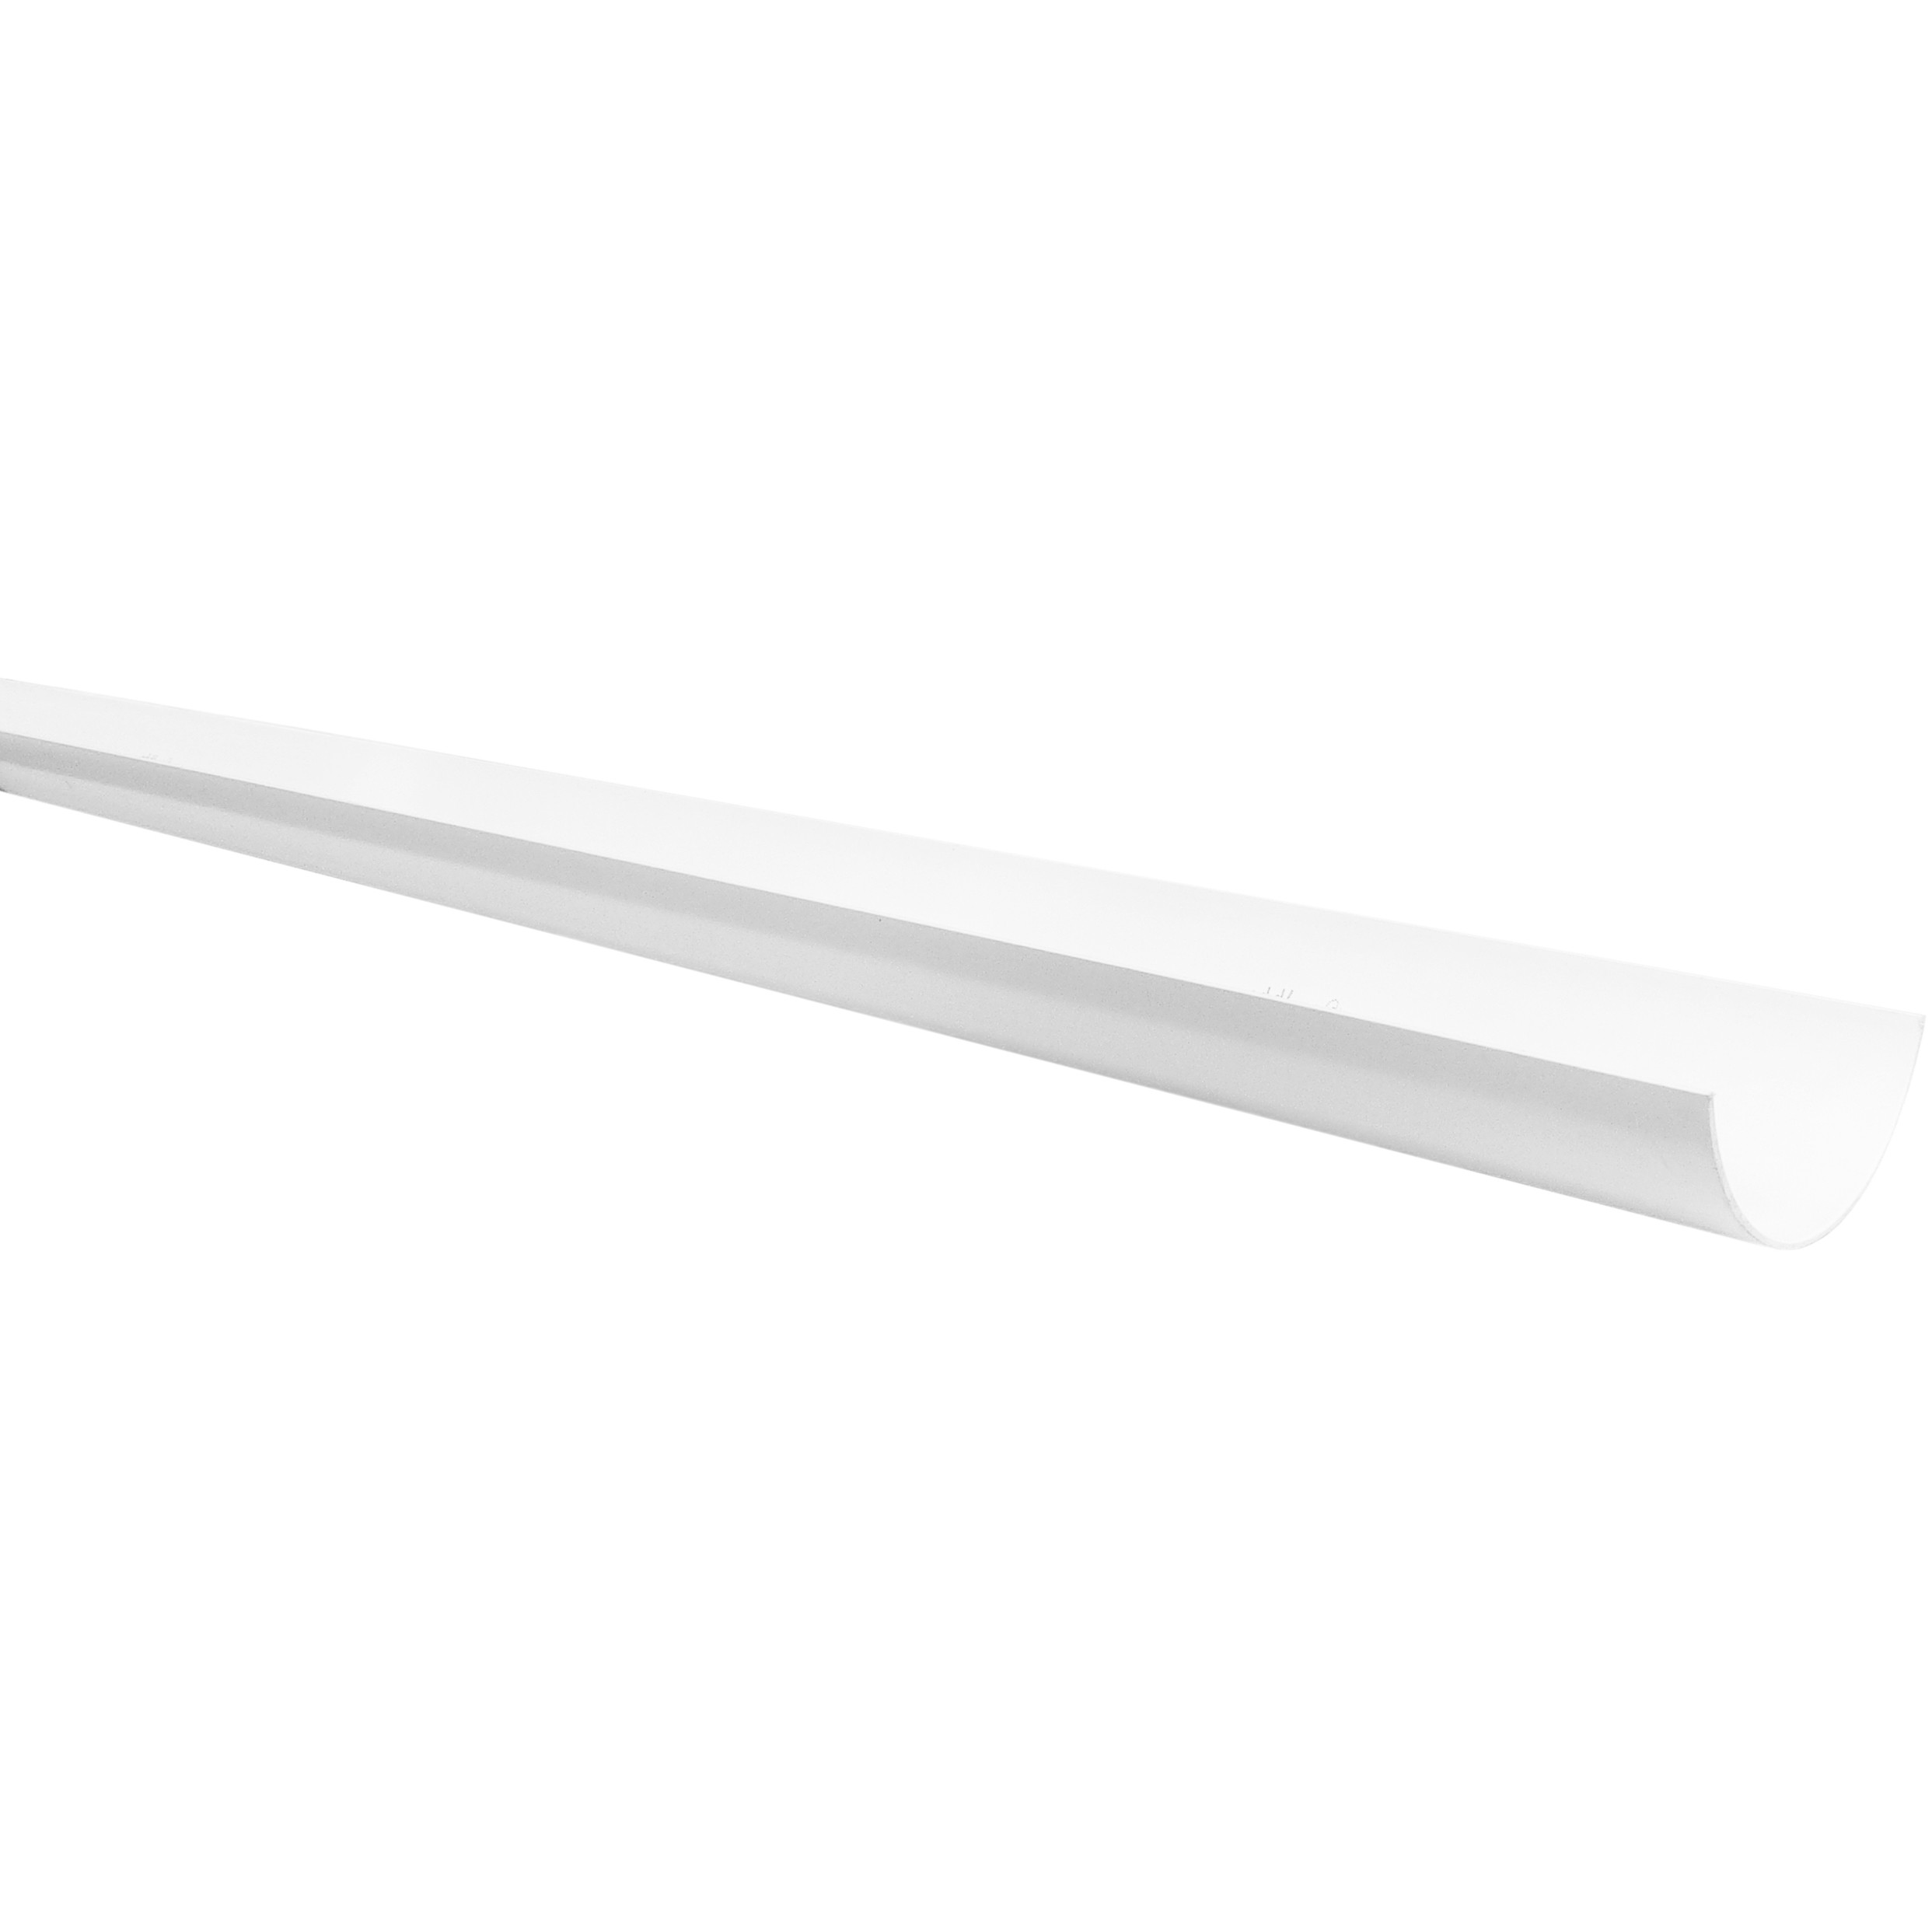 Polypipe 112mm Half Round Gutter - White, 2 metre